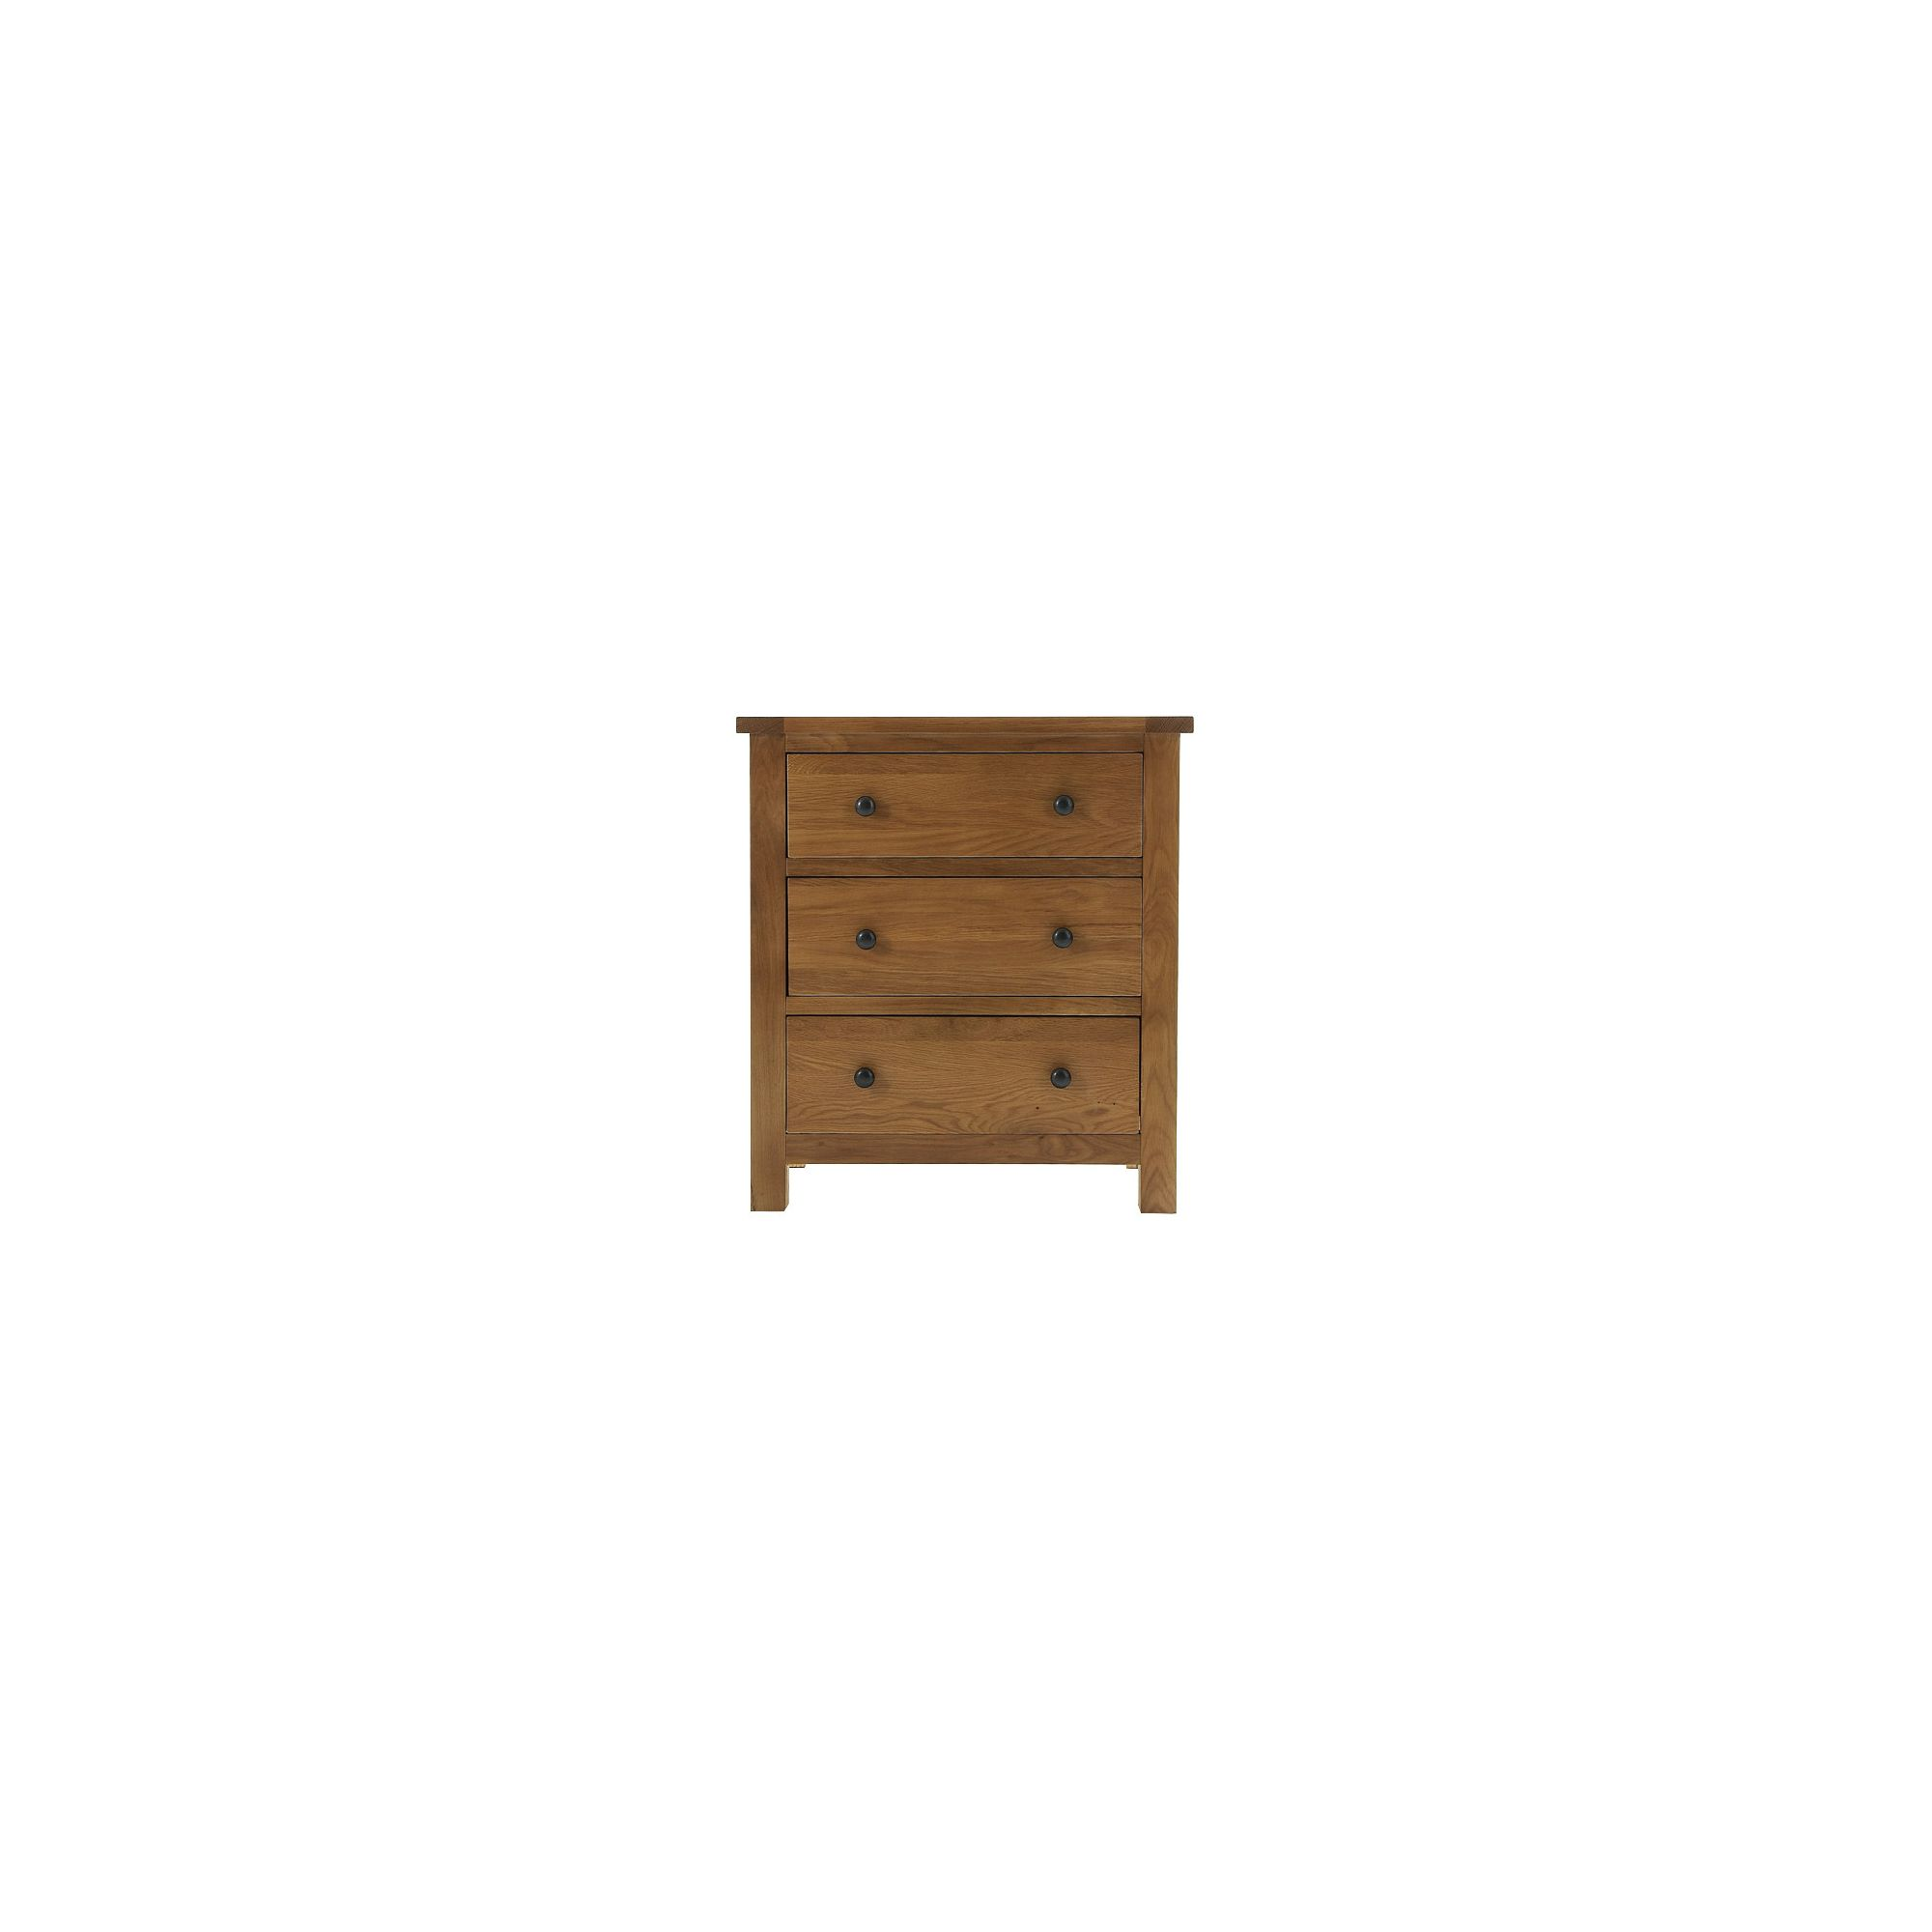 Thorndon Eden 2 Over 3 Drawer Chest in Warm Oak at Tesco Direct